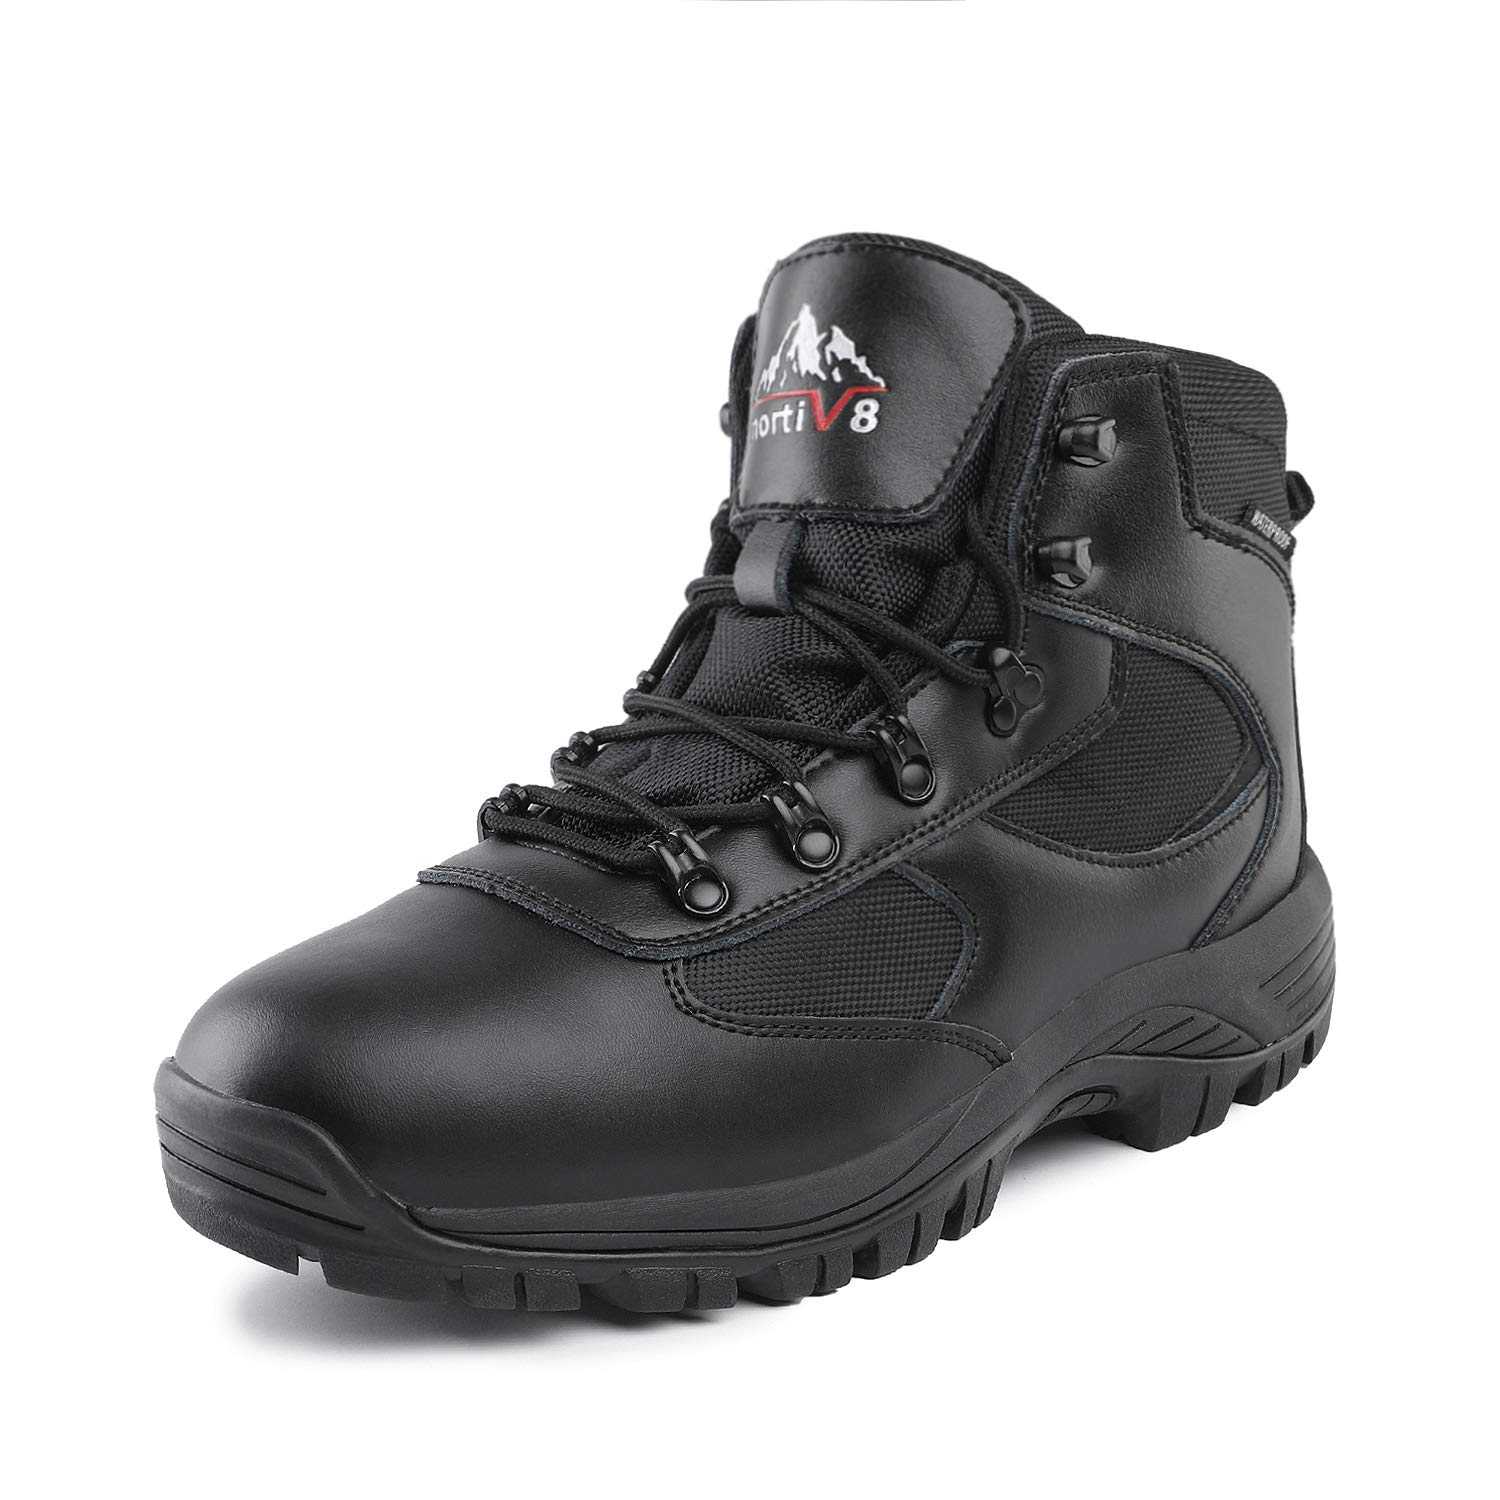 NORTIV 8 Men's Mack_02 Black Mid Waterproof Hiking Boots Size 10.5 M US